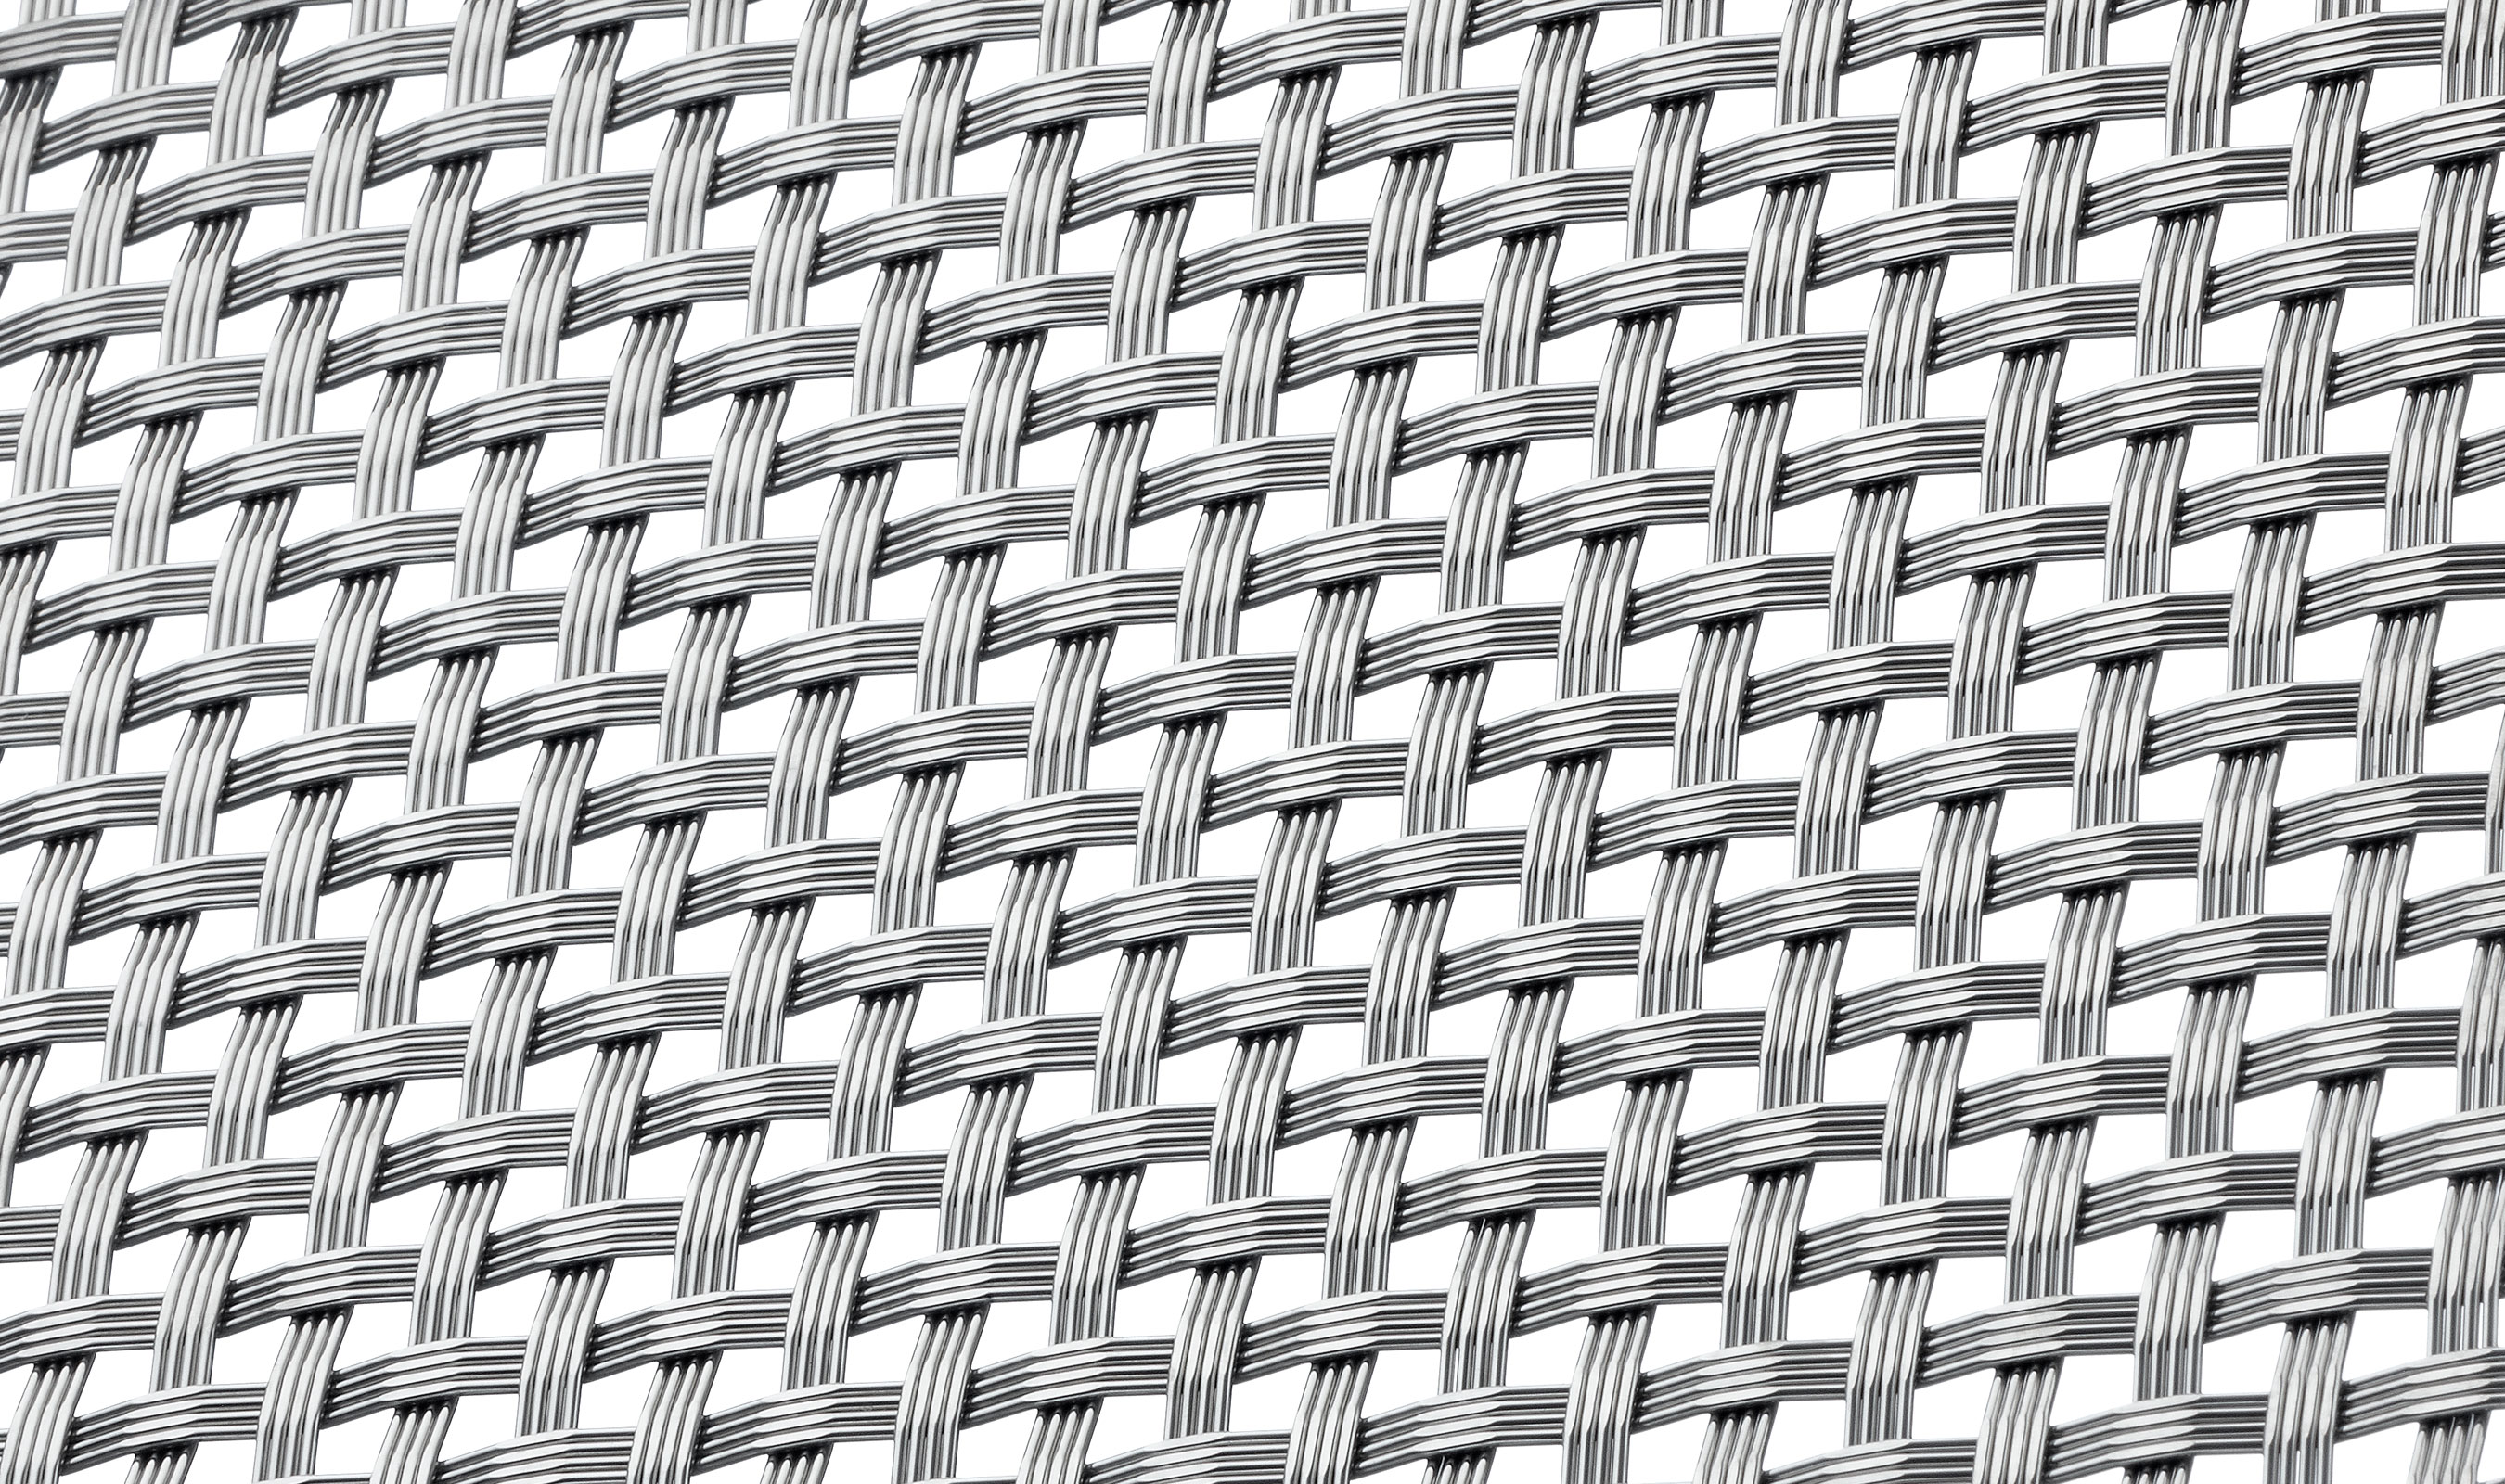 M44-7 Angle in Stainless Woven Wire Mesh